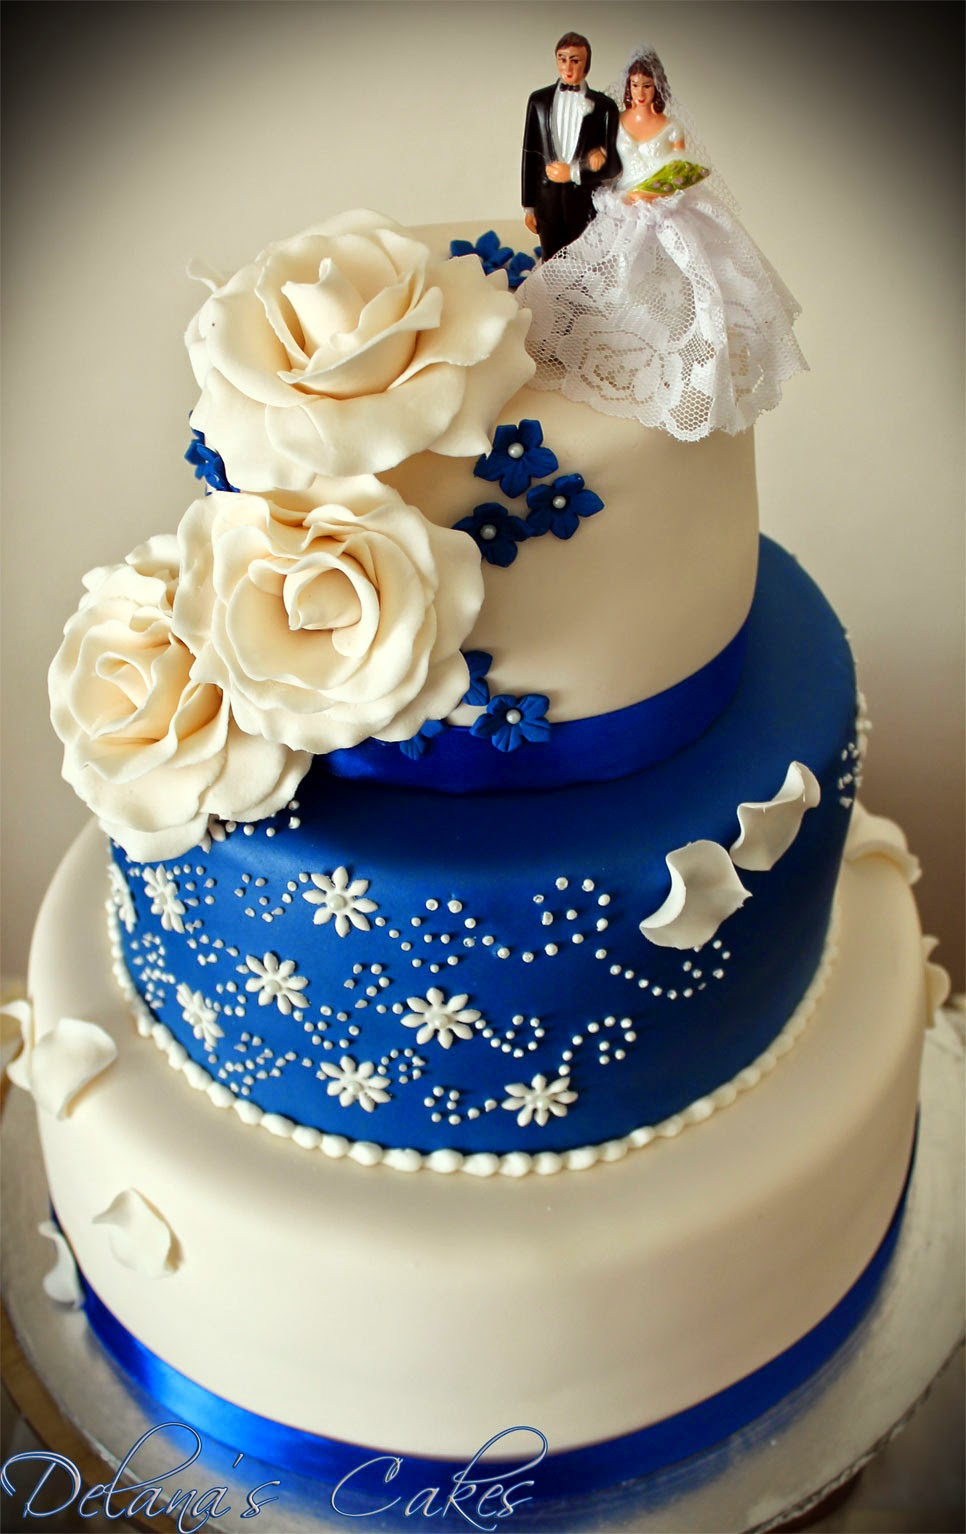 Delana s cakes royal blue and white wedding cake